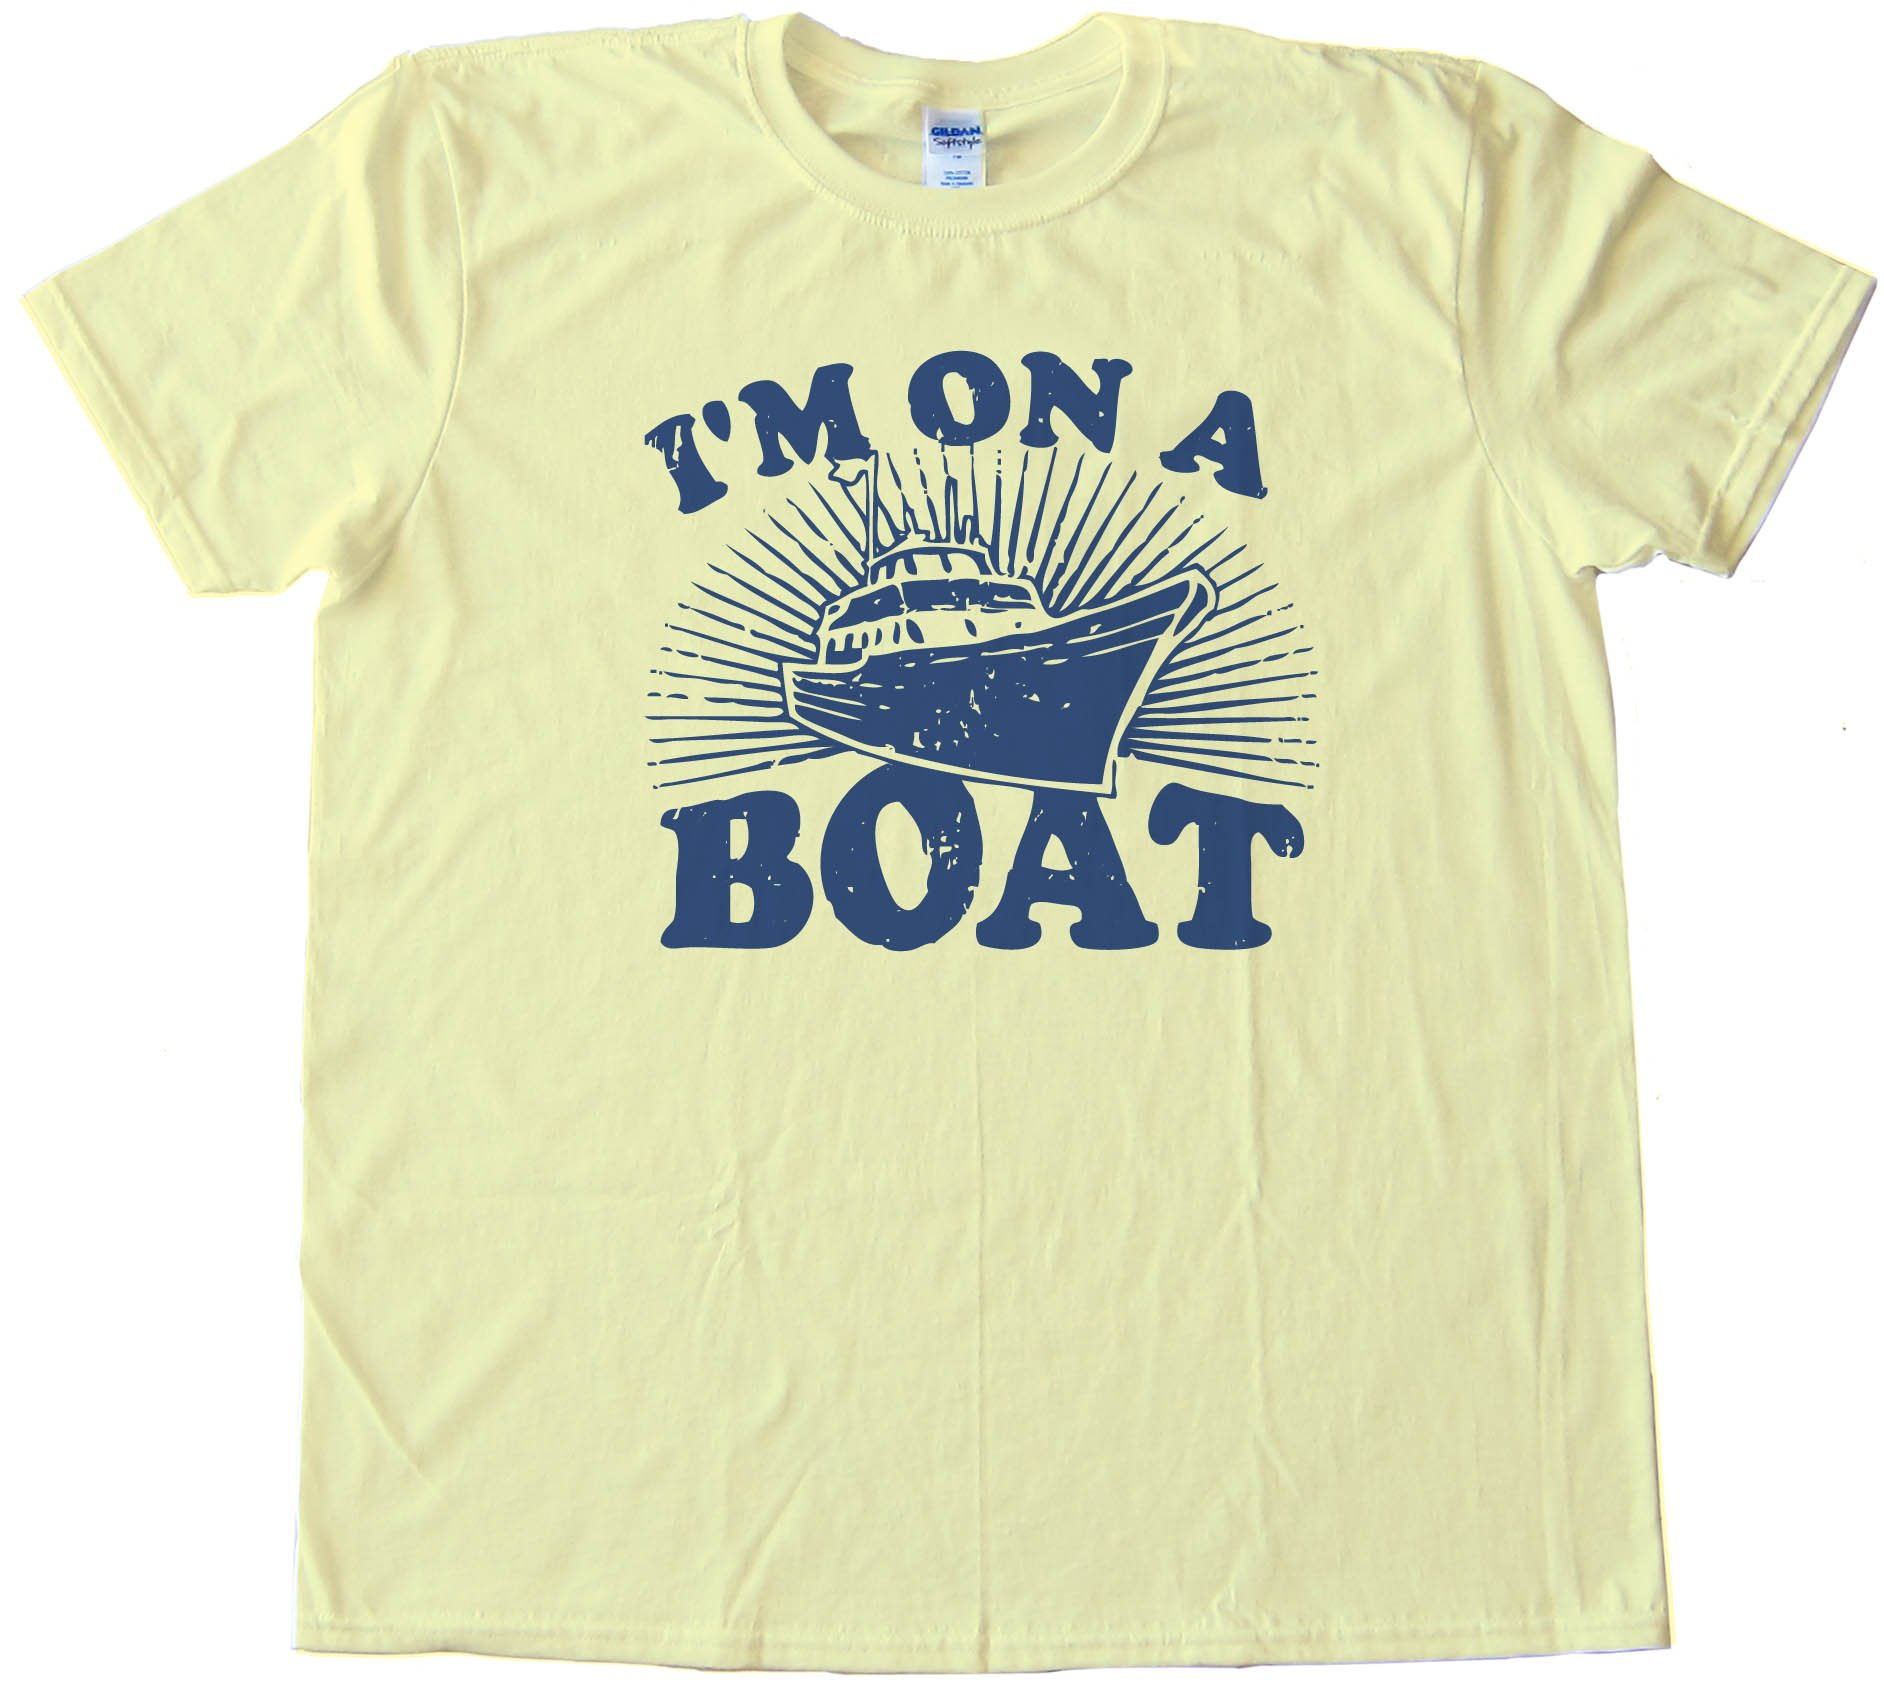 I'M On A Boat - Snl - Saturday Night Live Tee Shirt